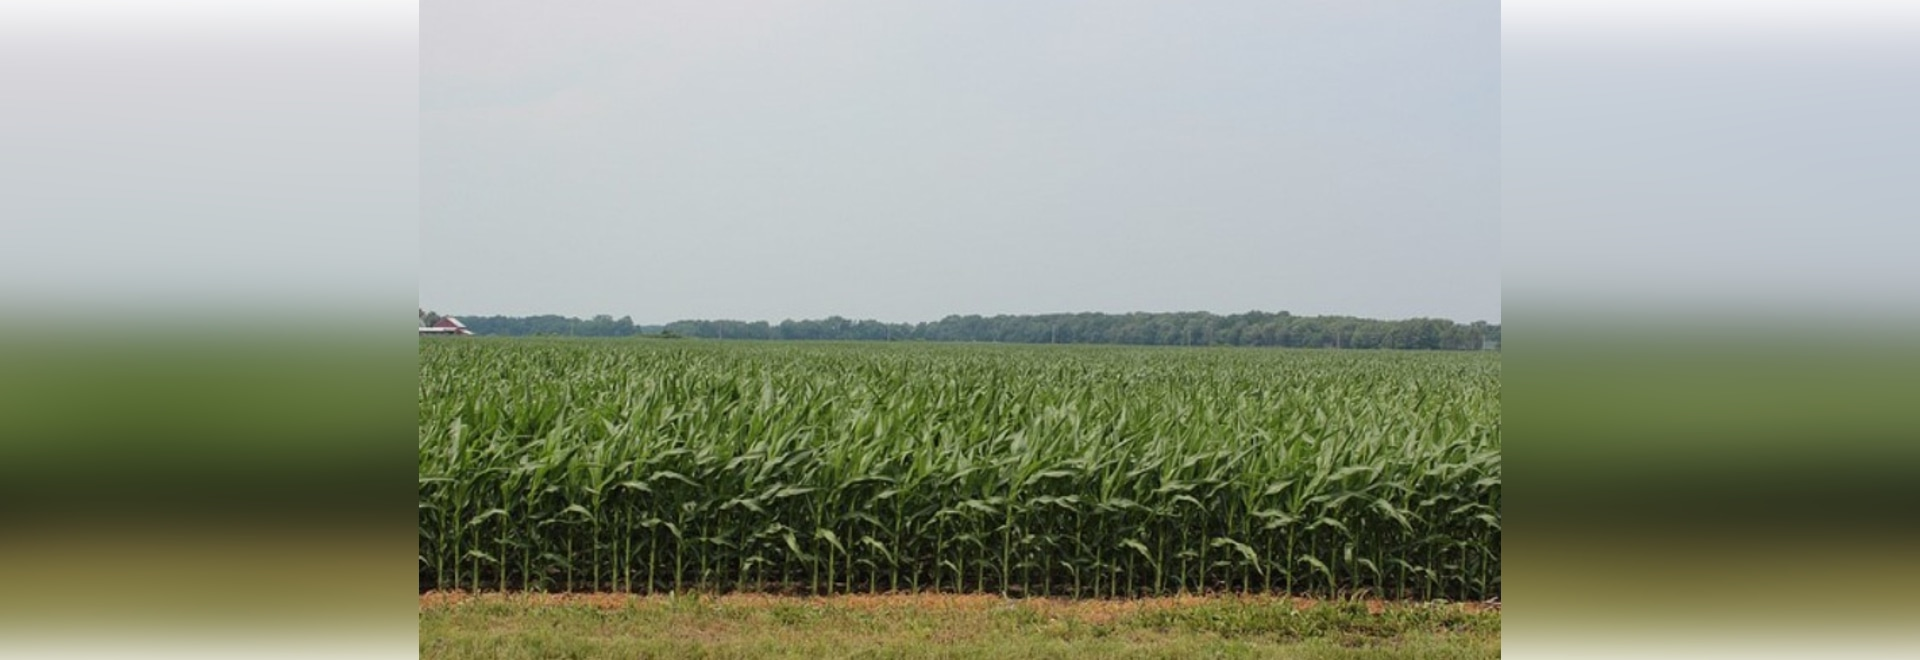 In Selecting Silage Hybrids, It's Best to Test